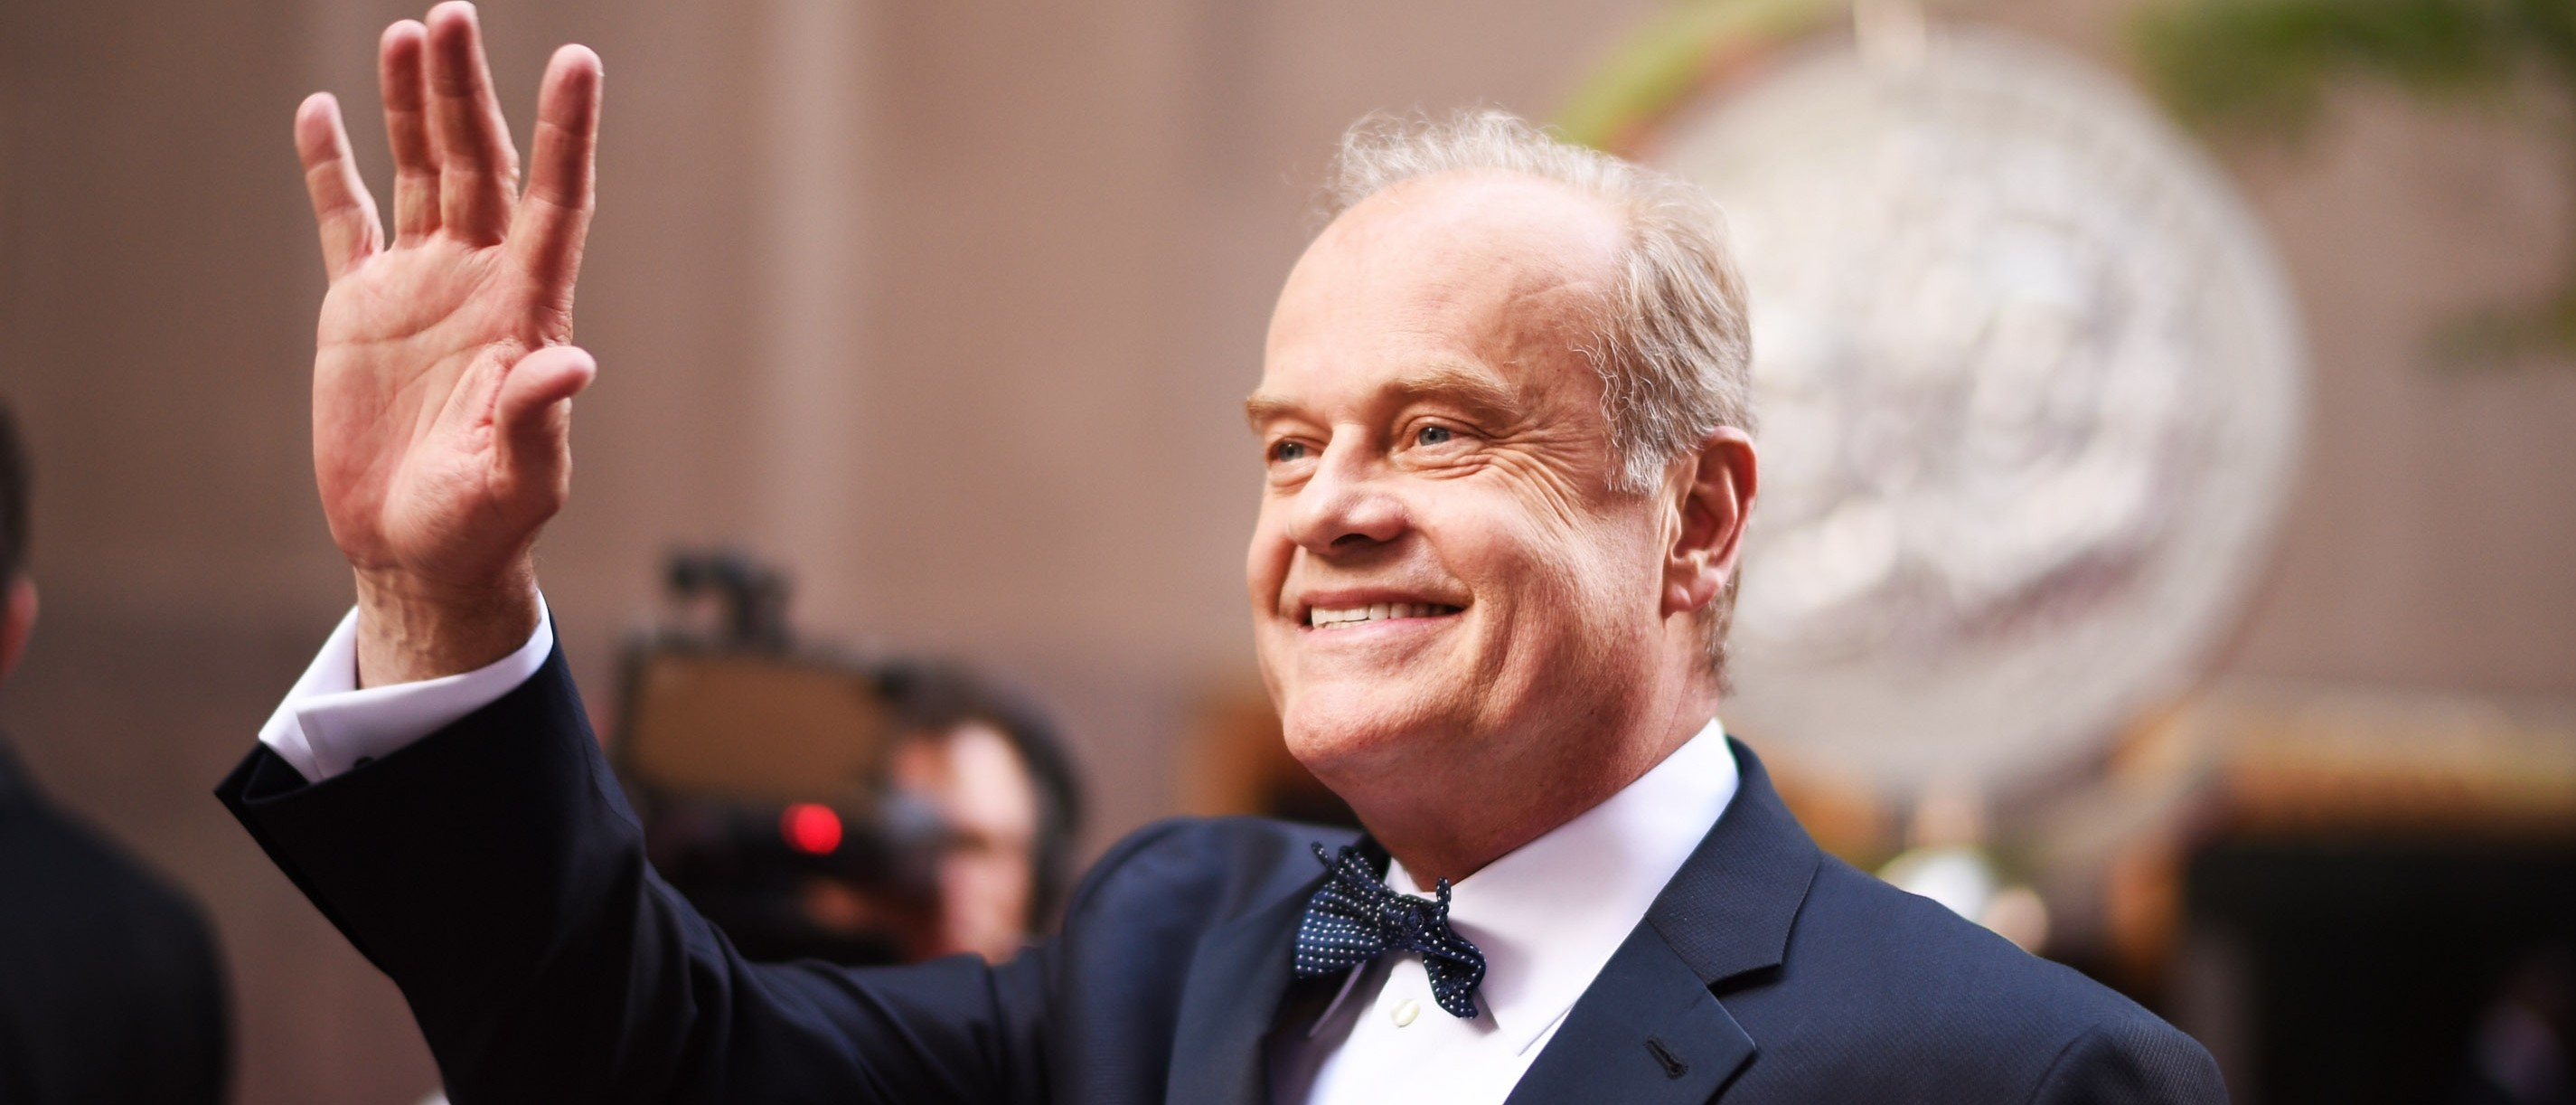 Kelsey Grammer Just Revealed Which Republican He?s Supporting For President